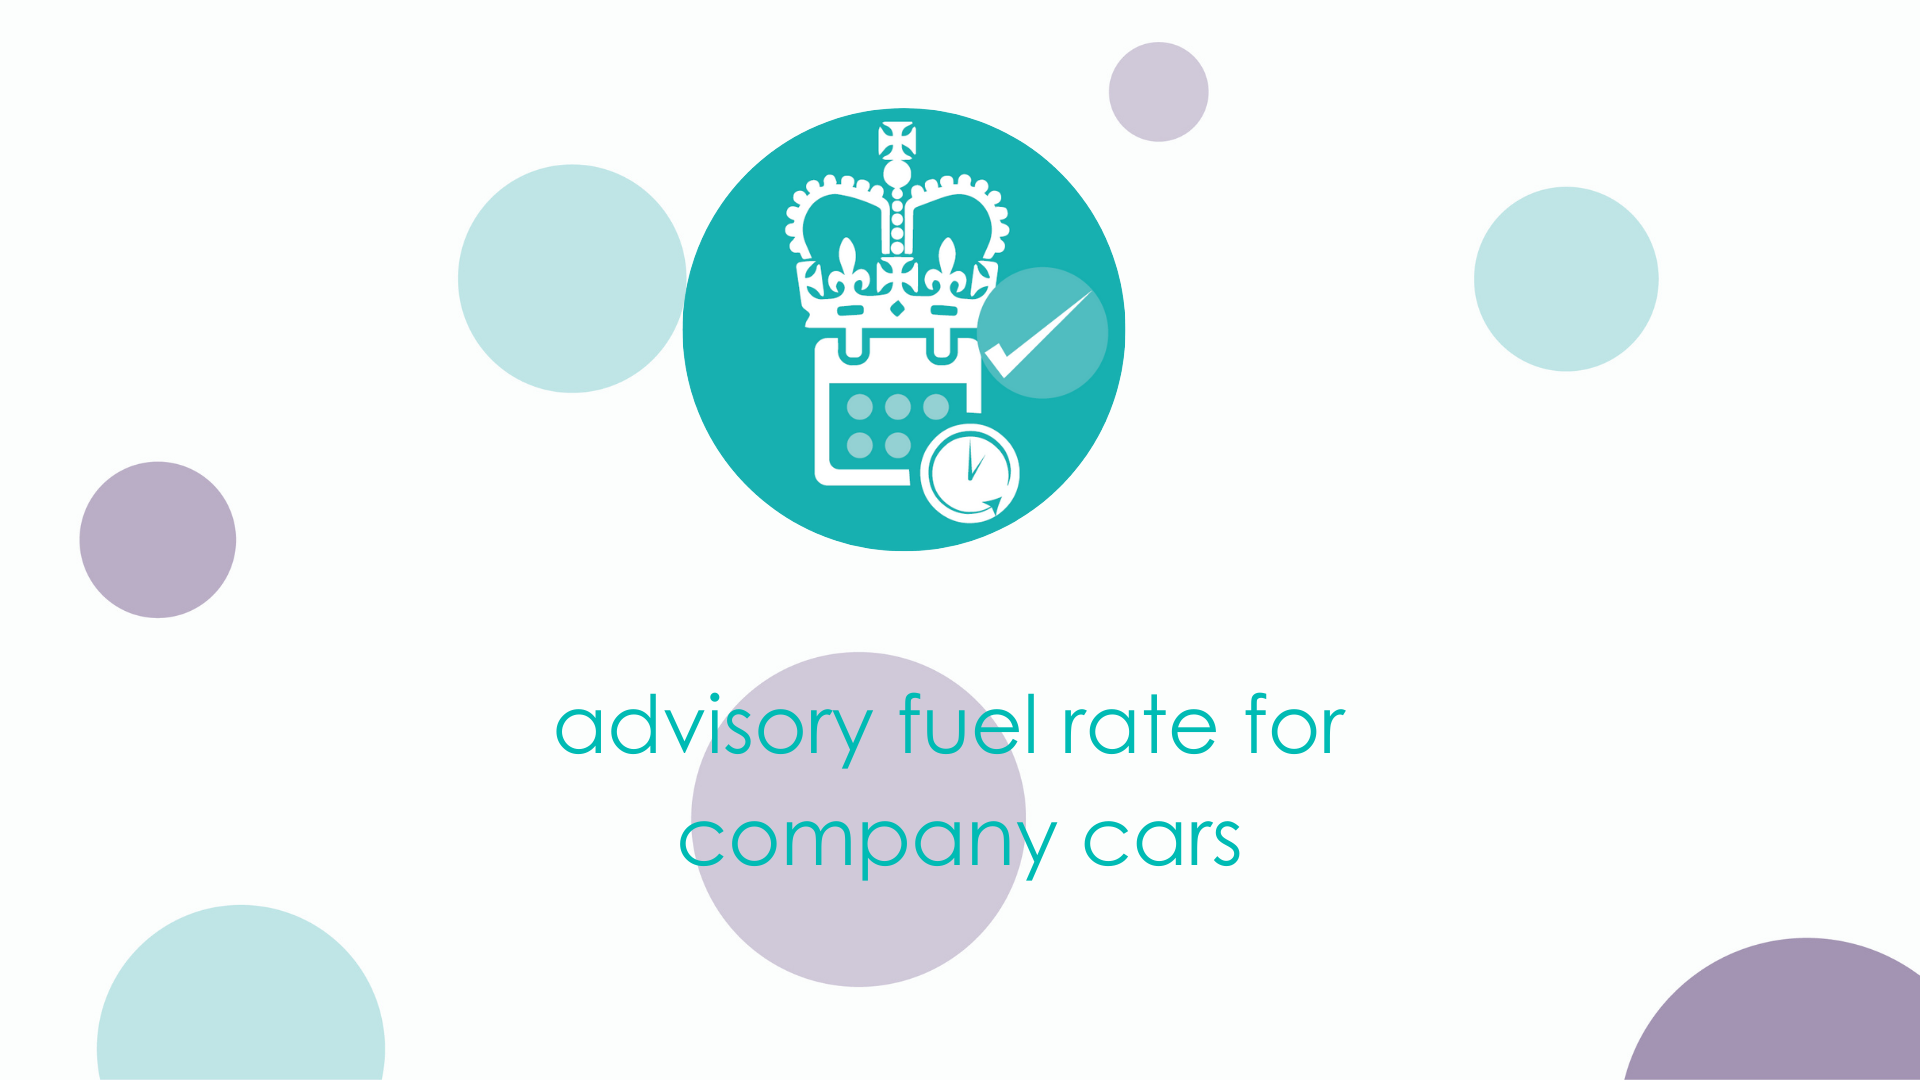 advisory fuel rate for company cars